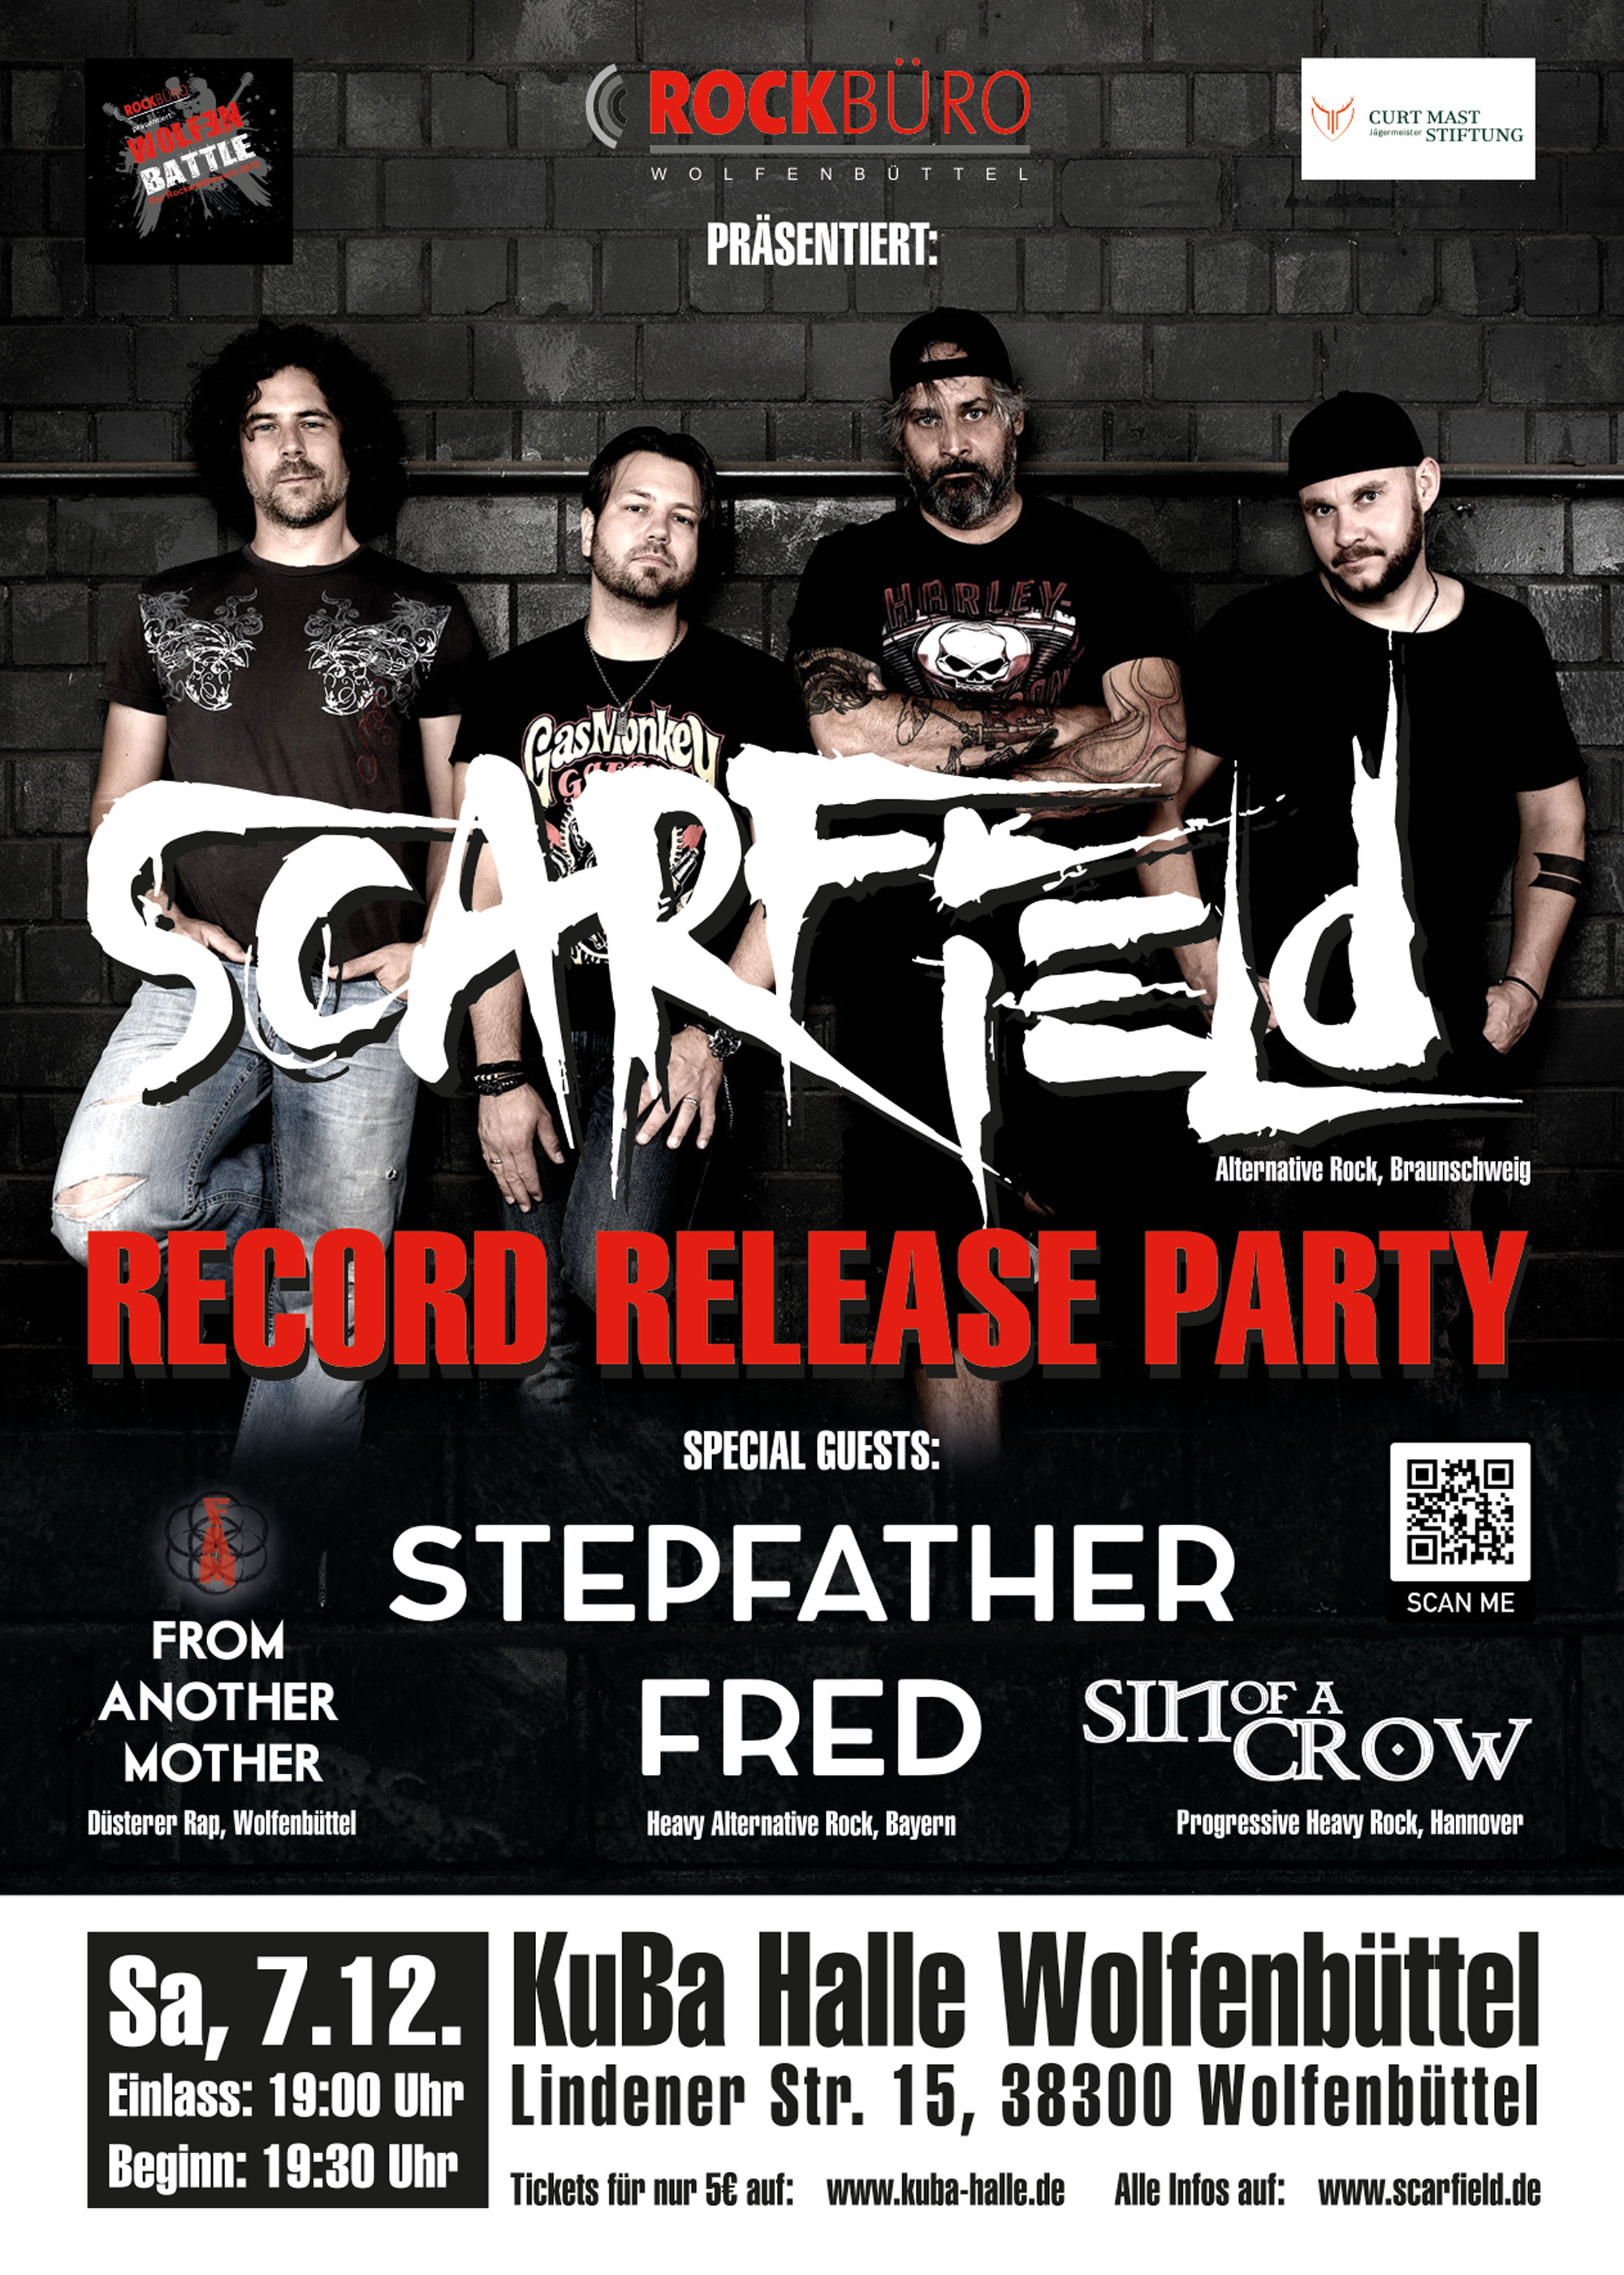 SCARFIELD - Record Release Party